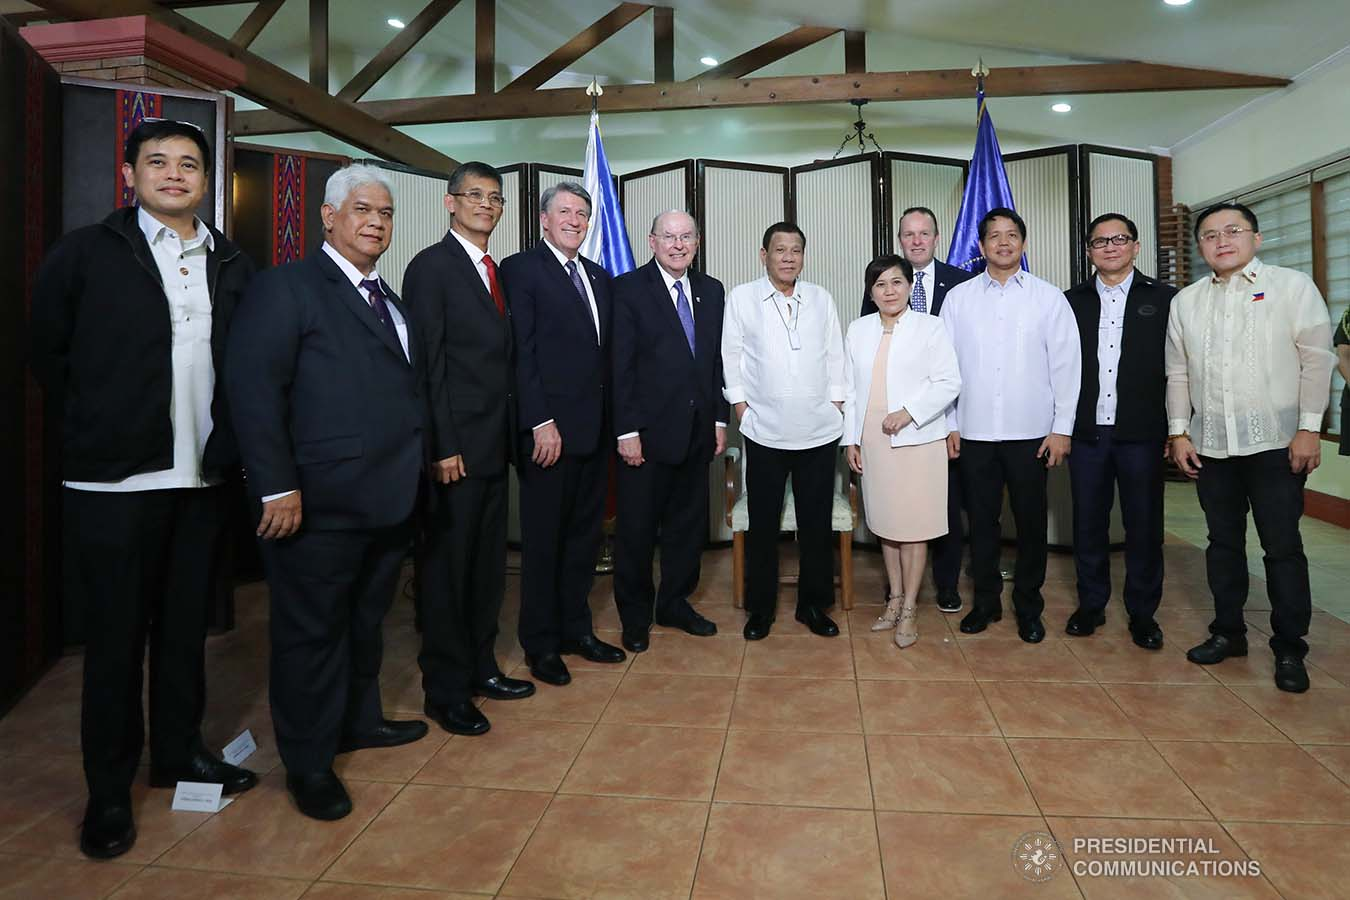 President Rodrigo Roa Duterte poses for posterity with the officials of the Church of Jesus Christ of Latter-Day Saints who paid a courtesy call on the President at the Malago Clubhouse in Manila on January 15, 2020. ALFRED FRIAS/PRESIDENTIAL PHOTO